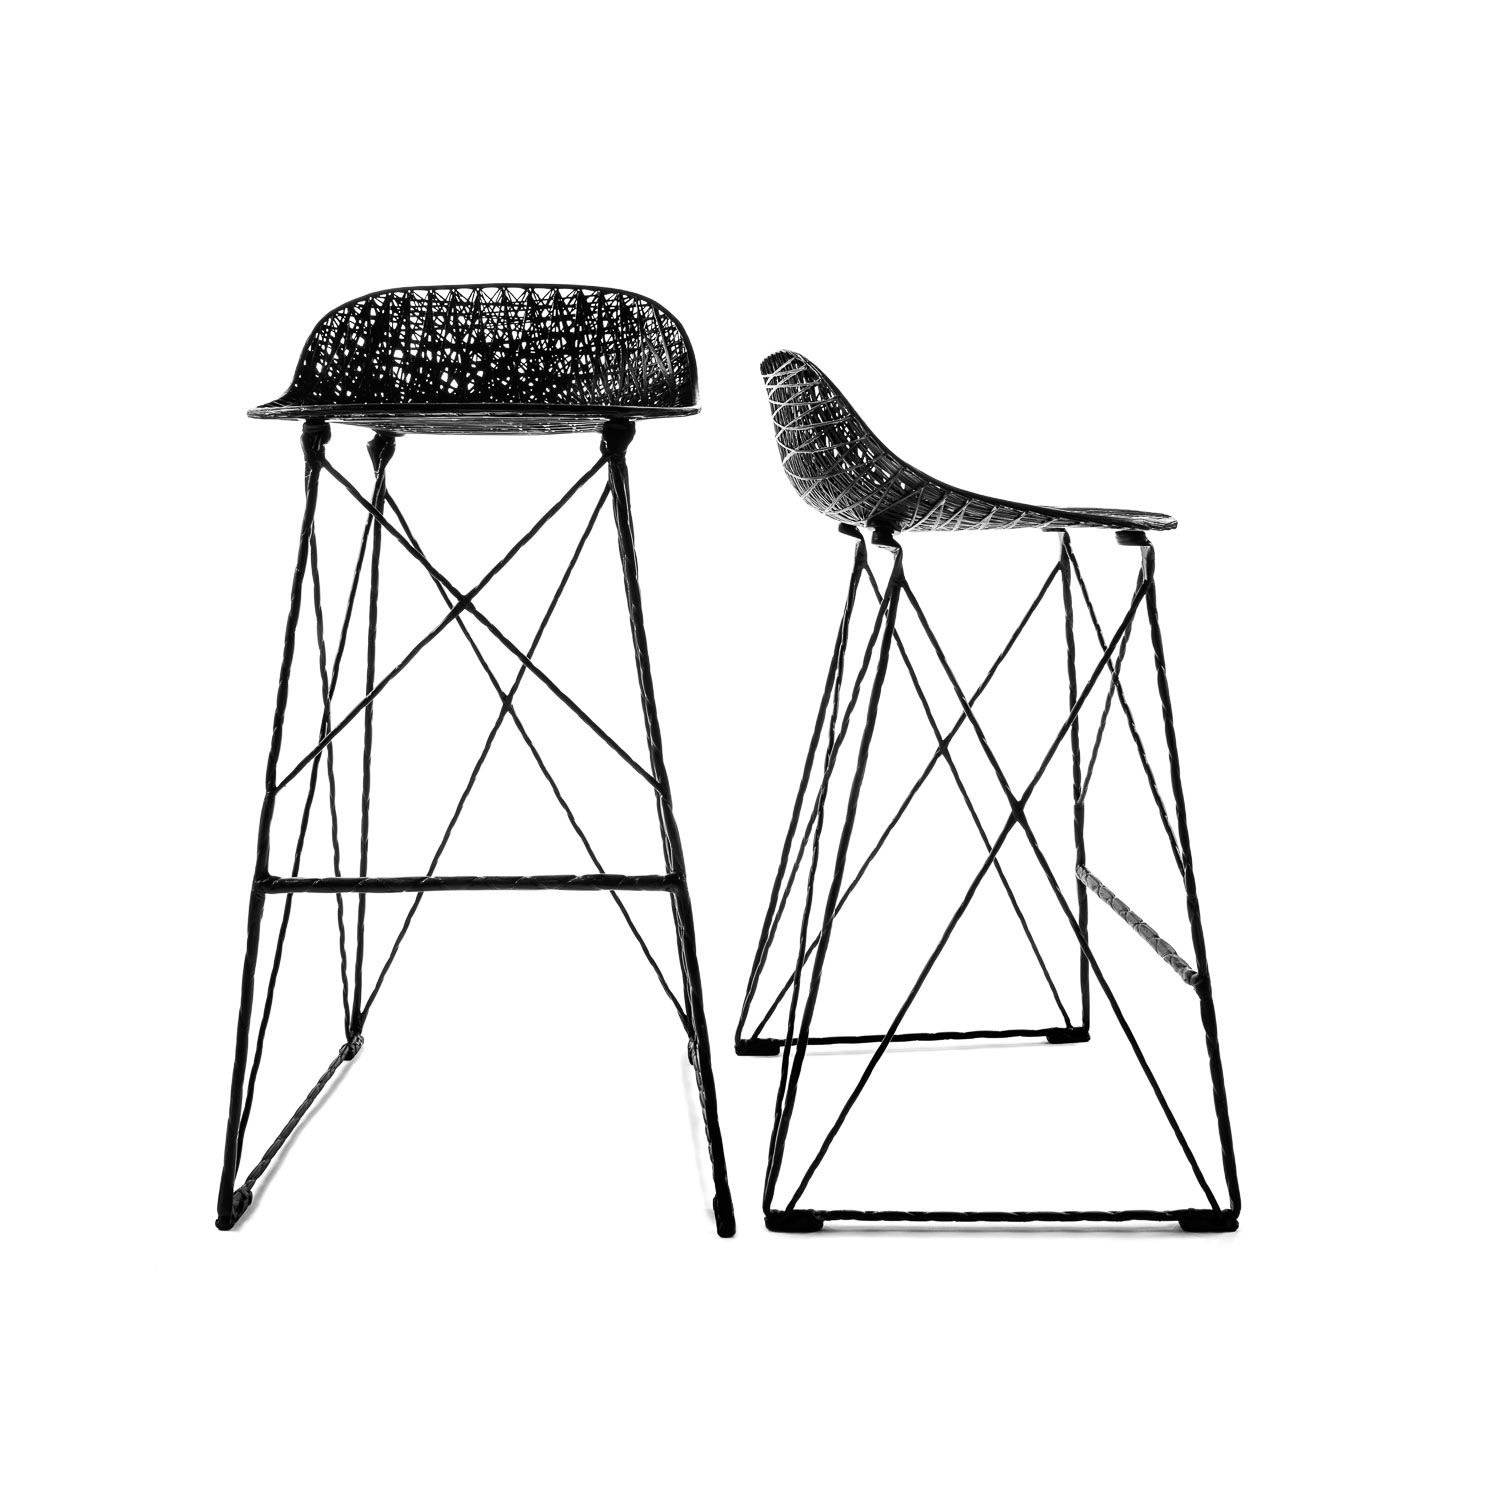 Moooi Mobilier Carbon Barstool (x2)